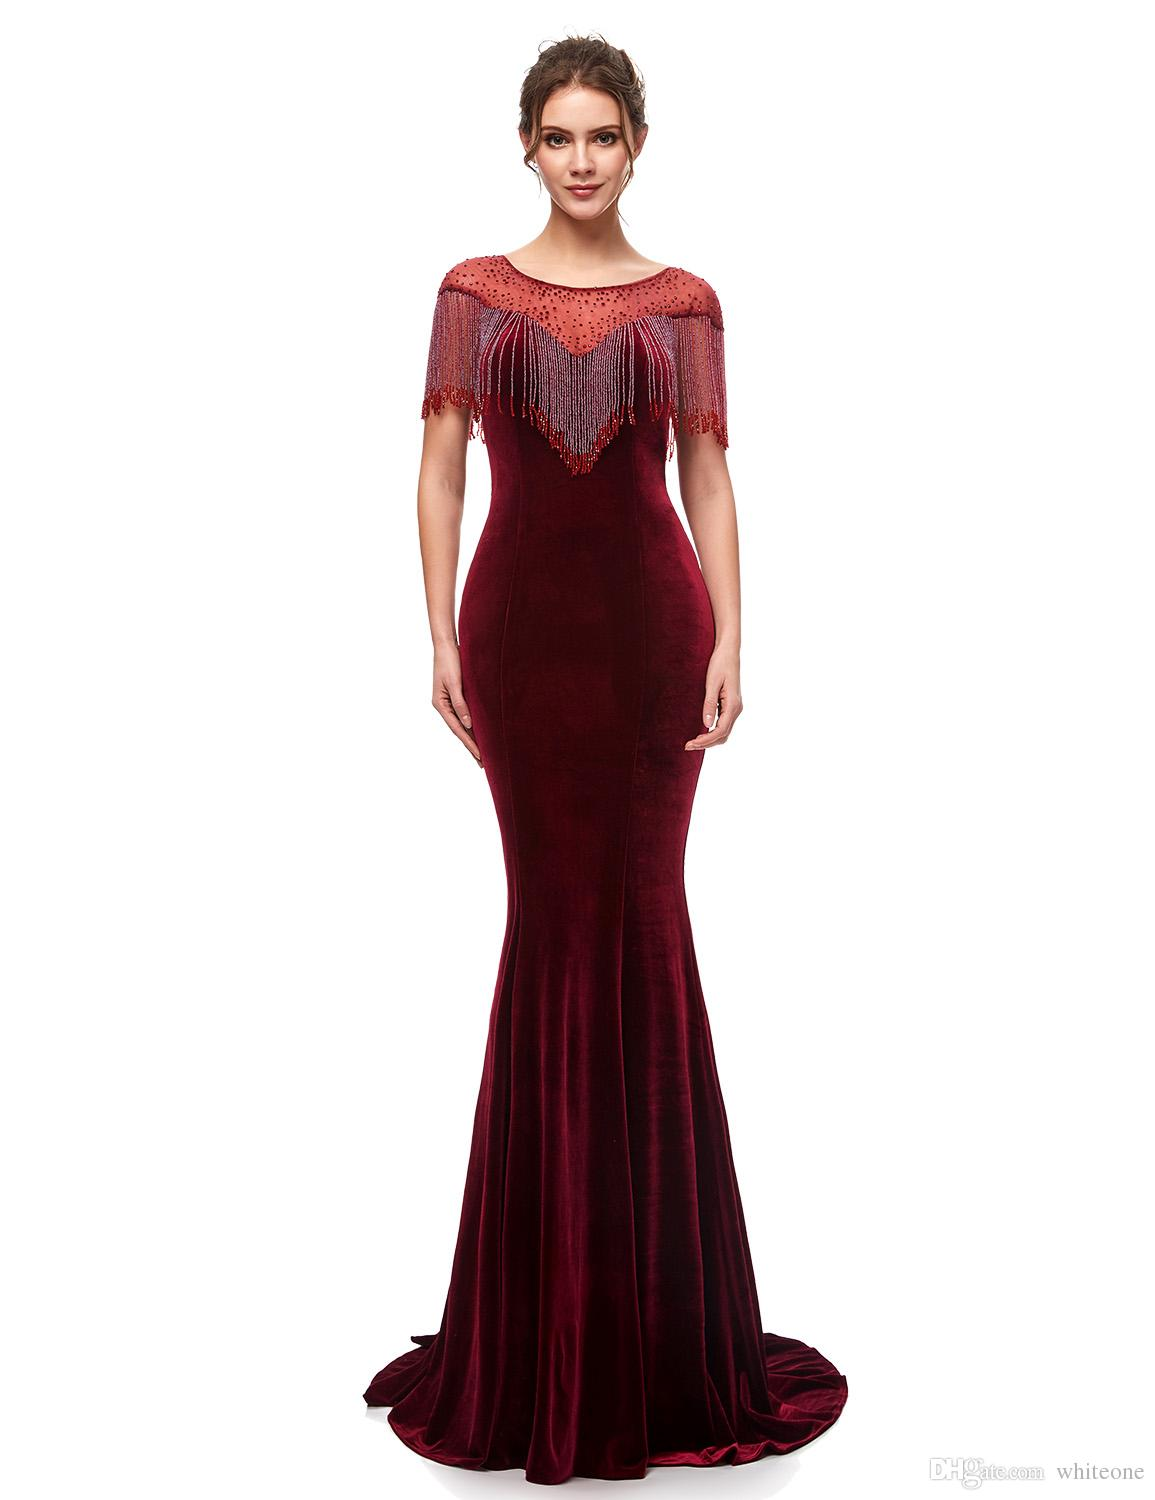 2019 New Stylish Evening Dresses Elegant Velvet With Tassel Formal Long Evening  Gowns Floor Length Pron Party Gowns Robe De Soiree 5400 Evening Dresses  Maxi ... 6f5b364ef2a0